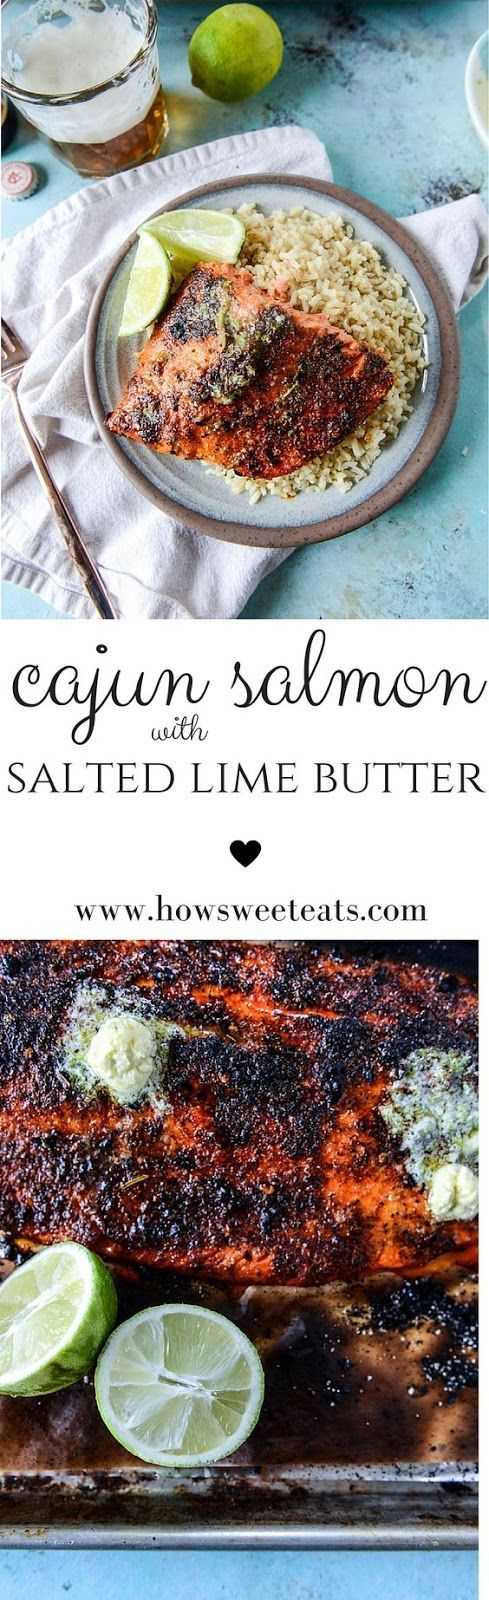 30 Minute Cajun Salmon with Salted Lime Butter: